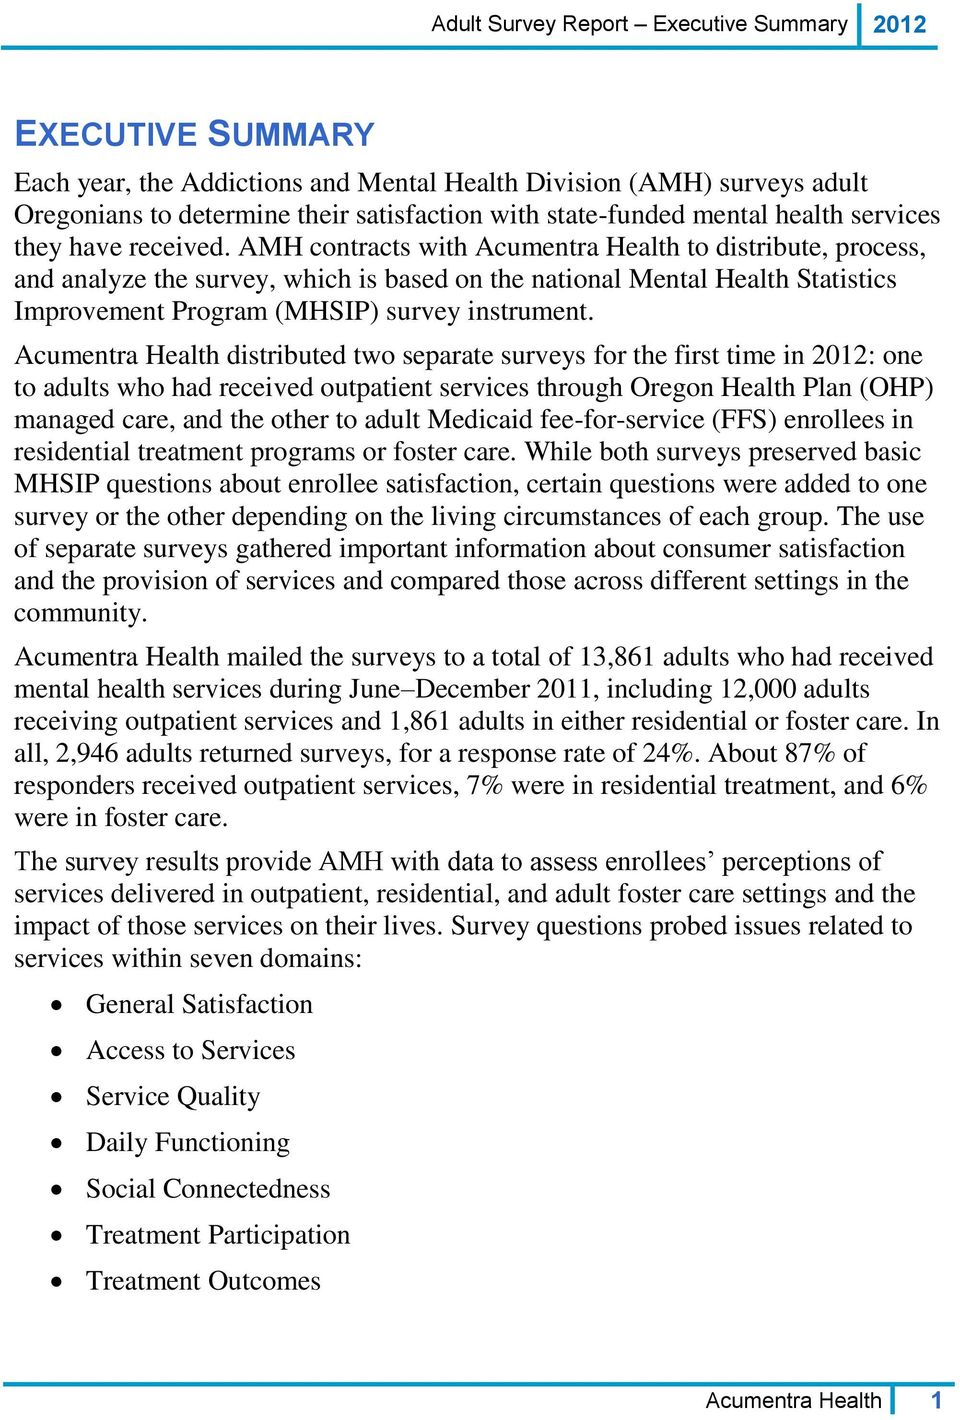 AMH contracts with Acumentra Health to distribute, process, and analyze the survey, which is based on the national Mental Health Statistics Improvement Program (MHSIP) survey instrument.